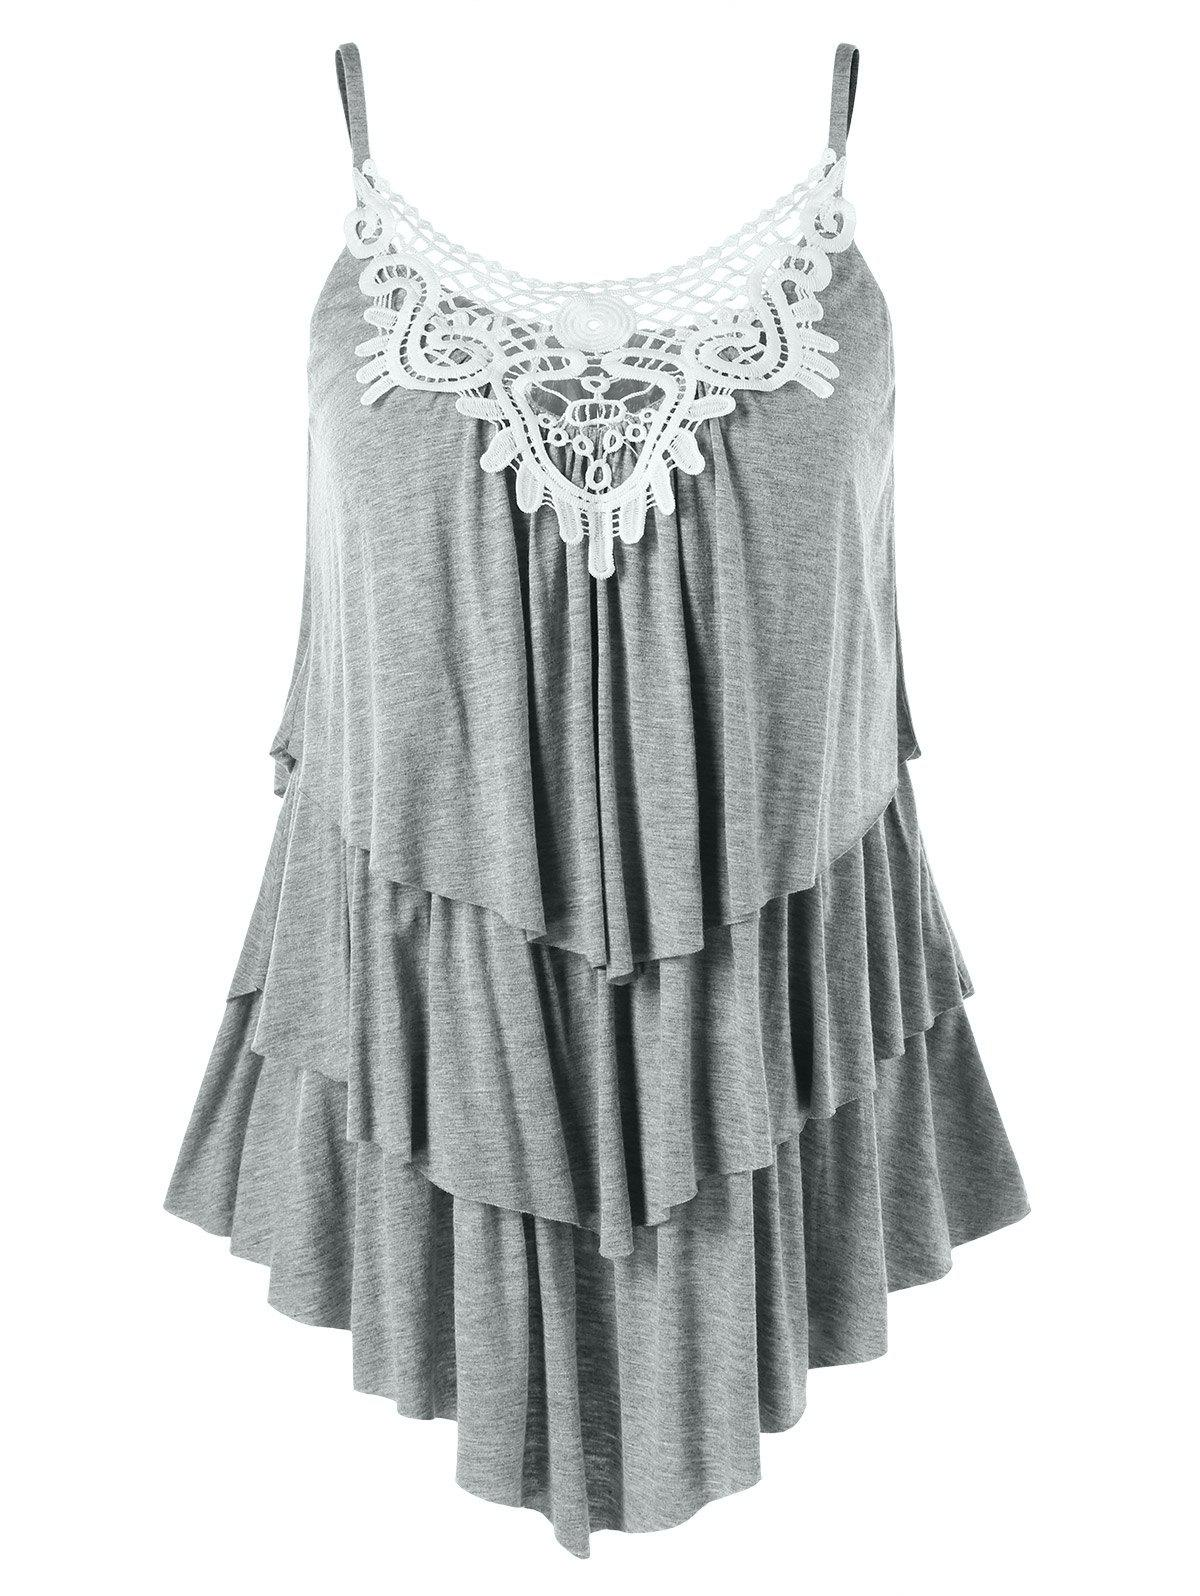 Asymmetrical Lace Applique Layered Cami Tank Top scallop lace applique exposed zip tulle tank top